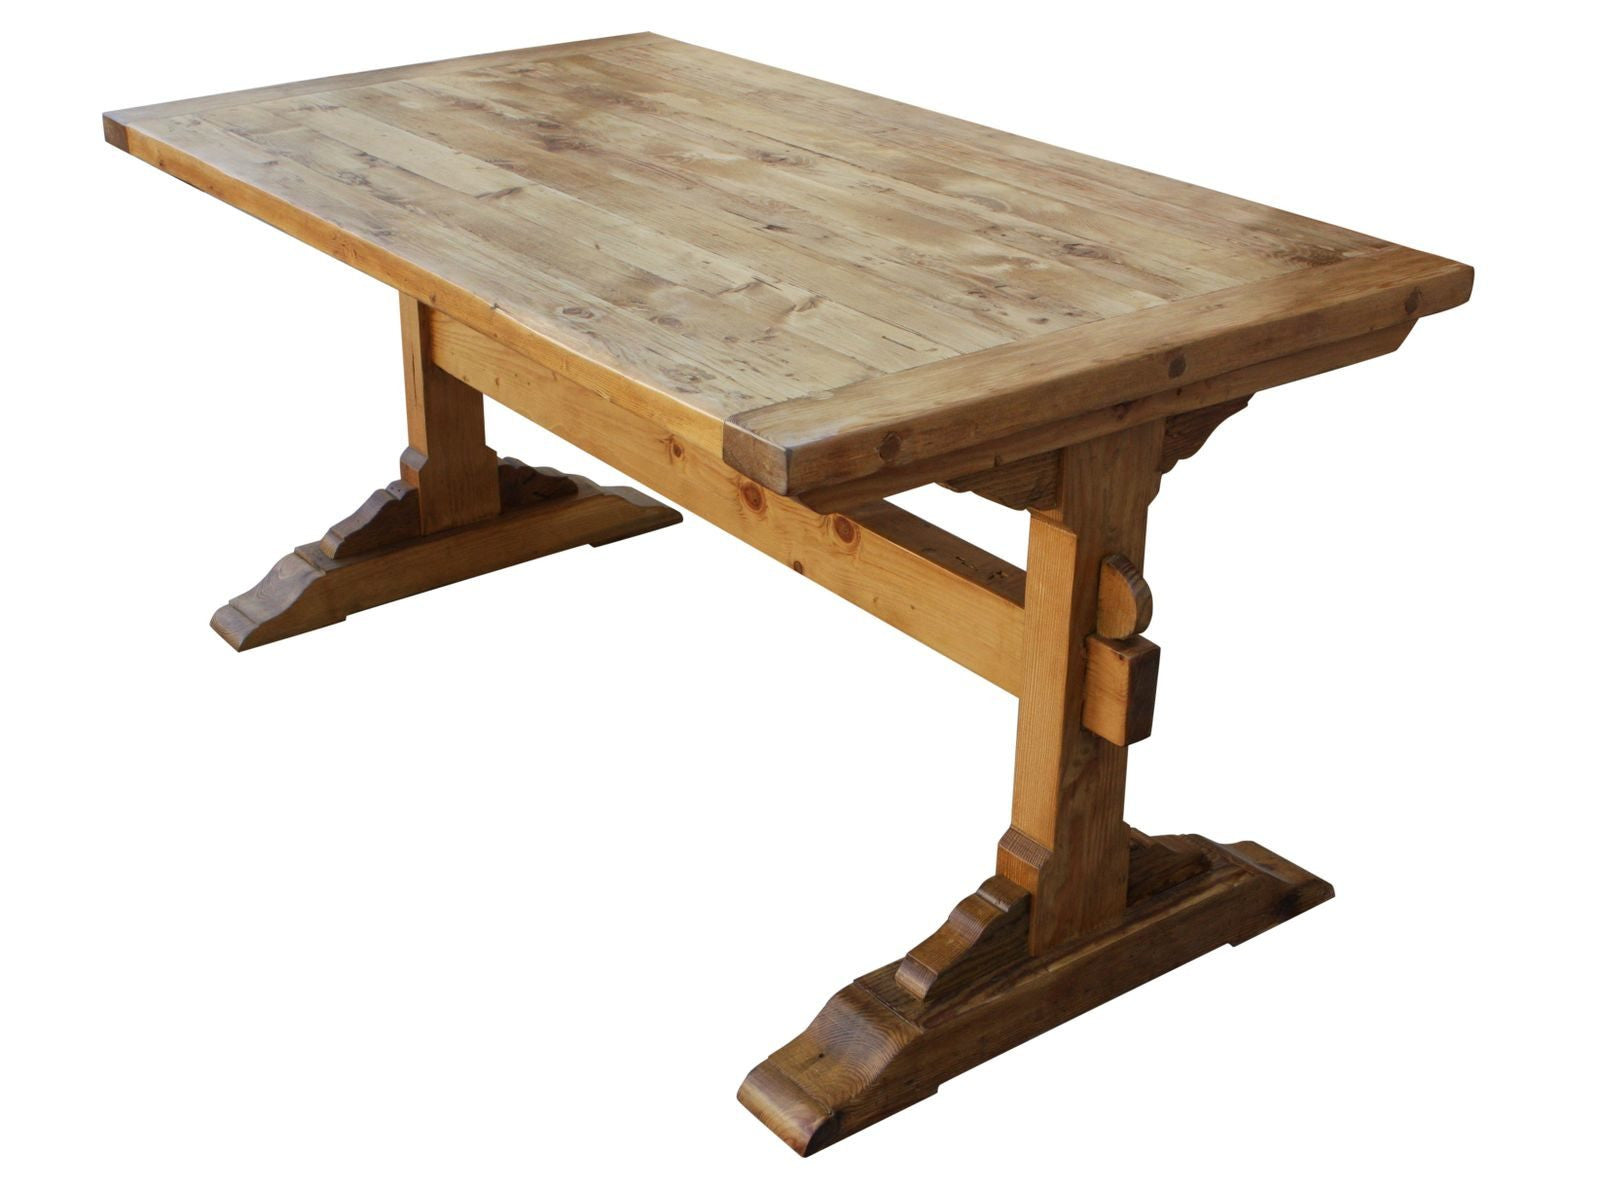 Santa Barbara Dining Trestle Table Built In Reclaimed